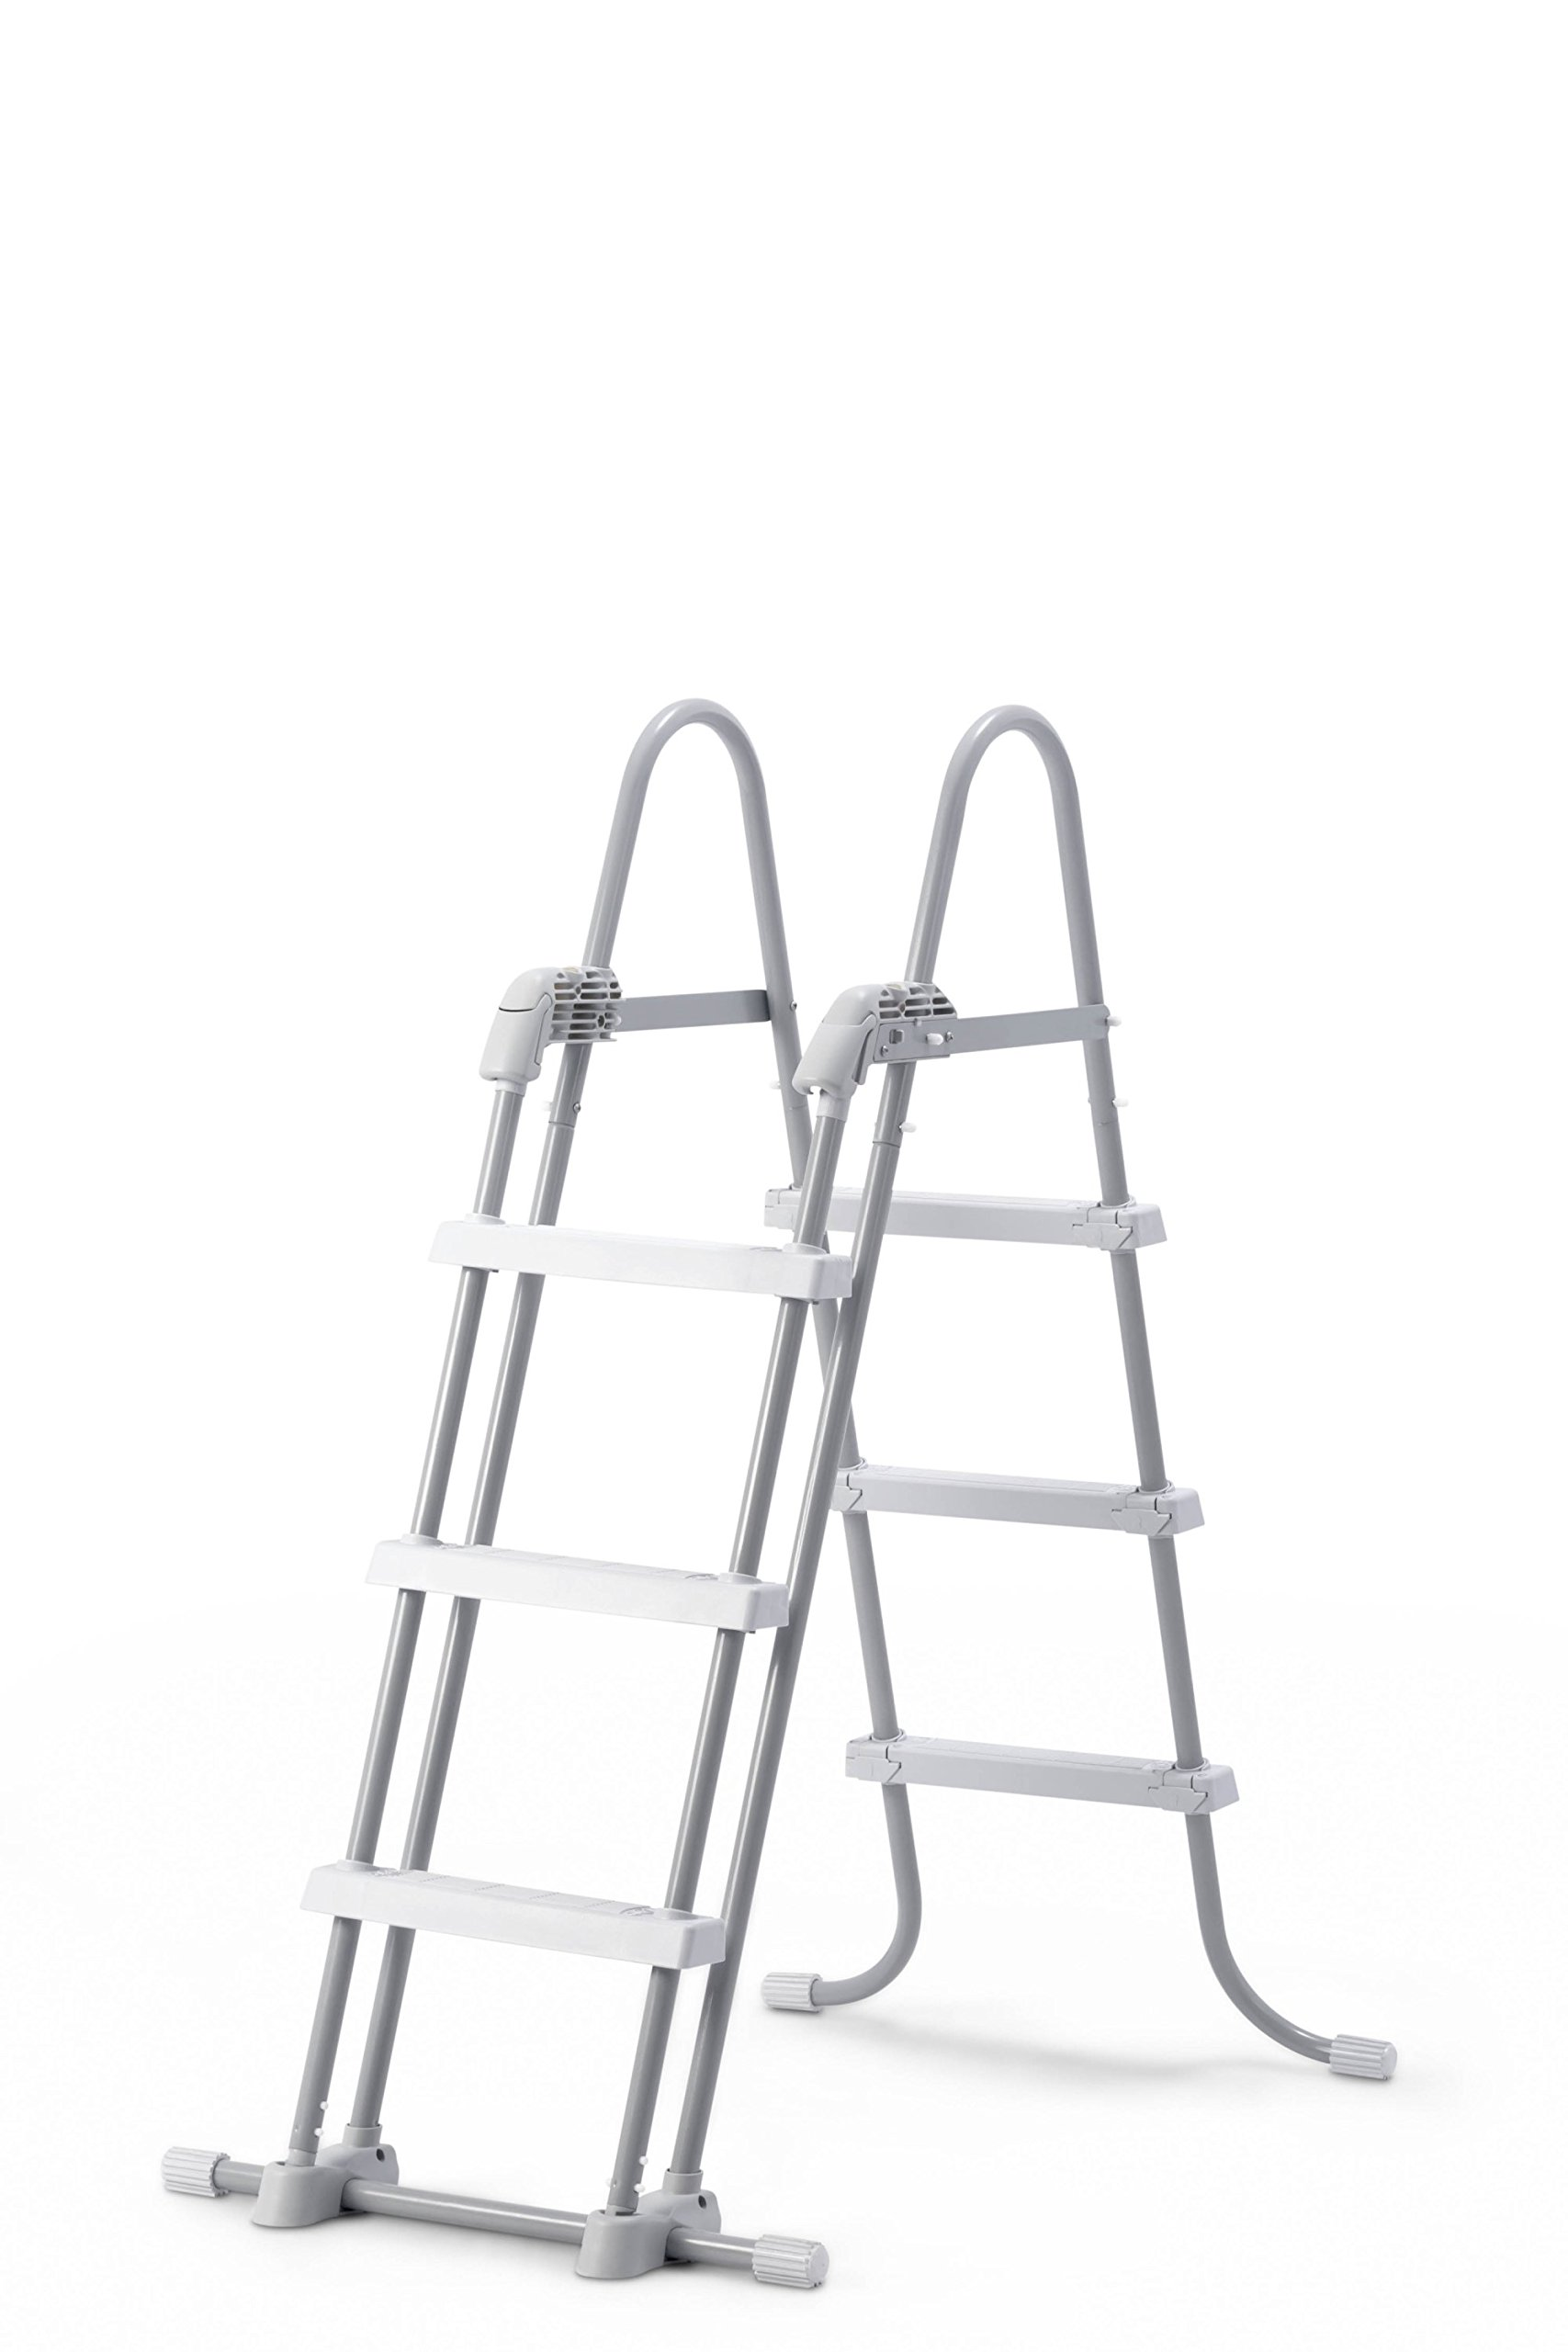 Intex Deluxe Pool Ladder With Removable Steps For 36-Inch And 42-Inch Wall He.. 10